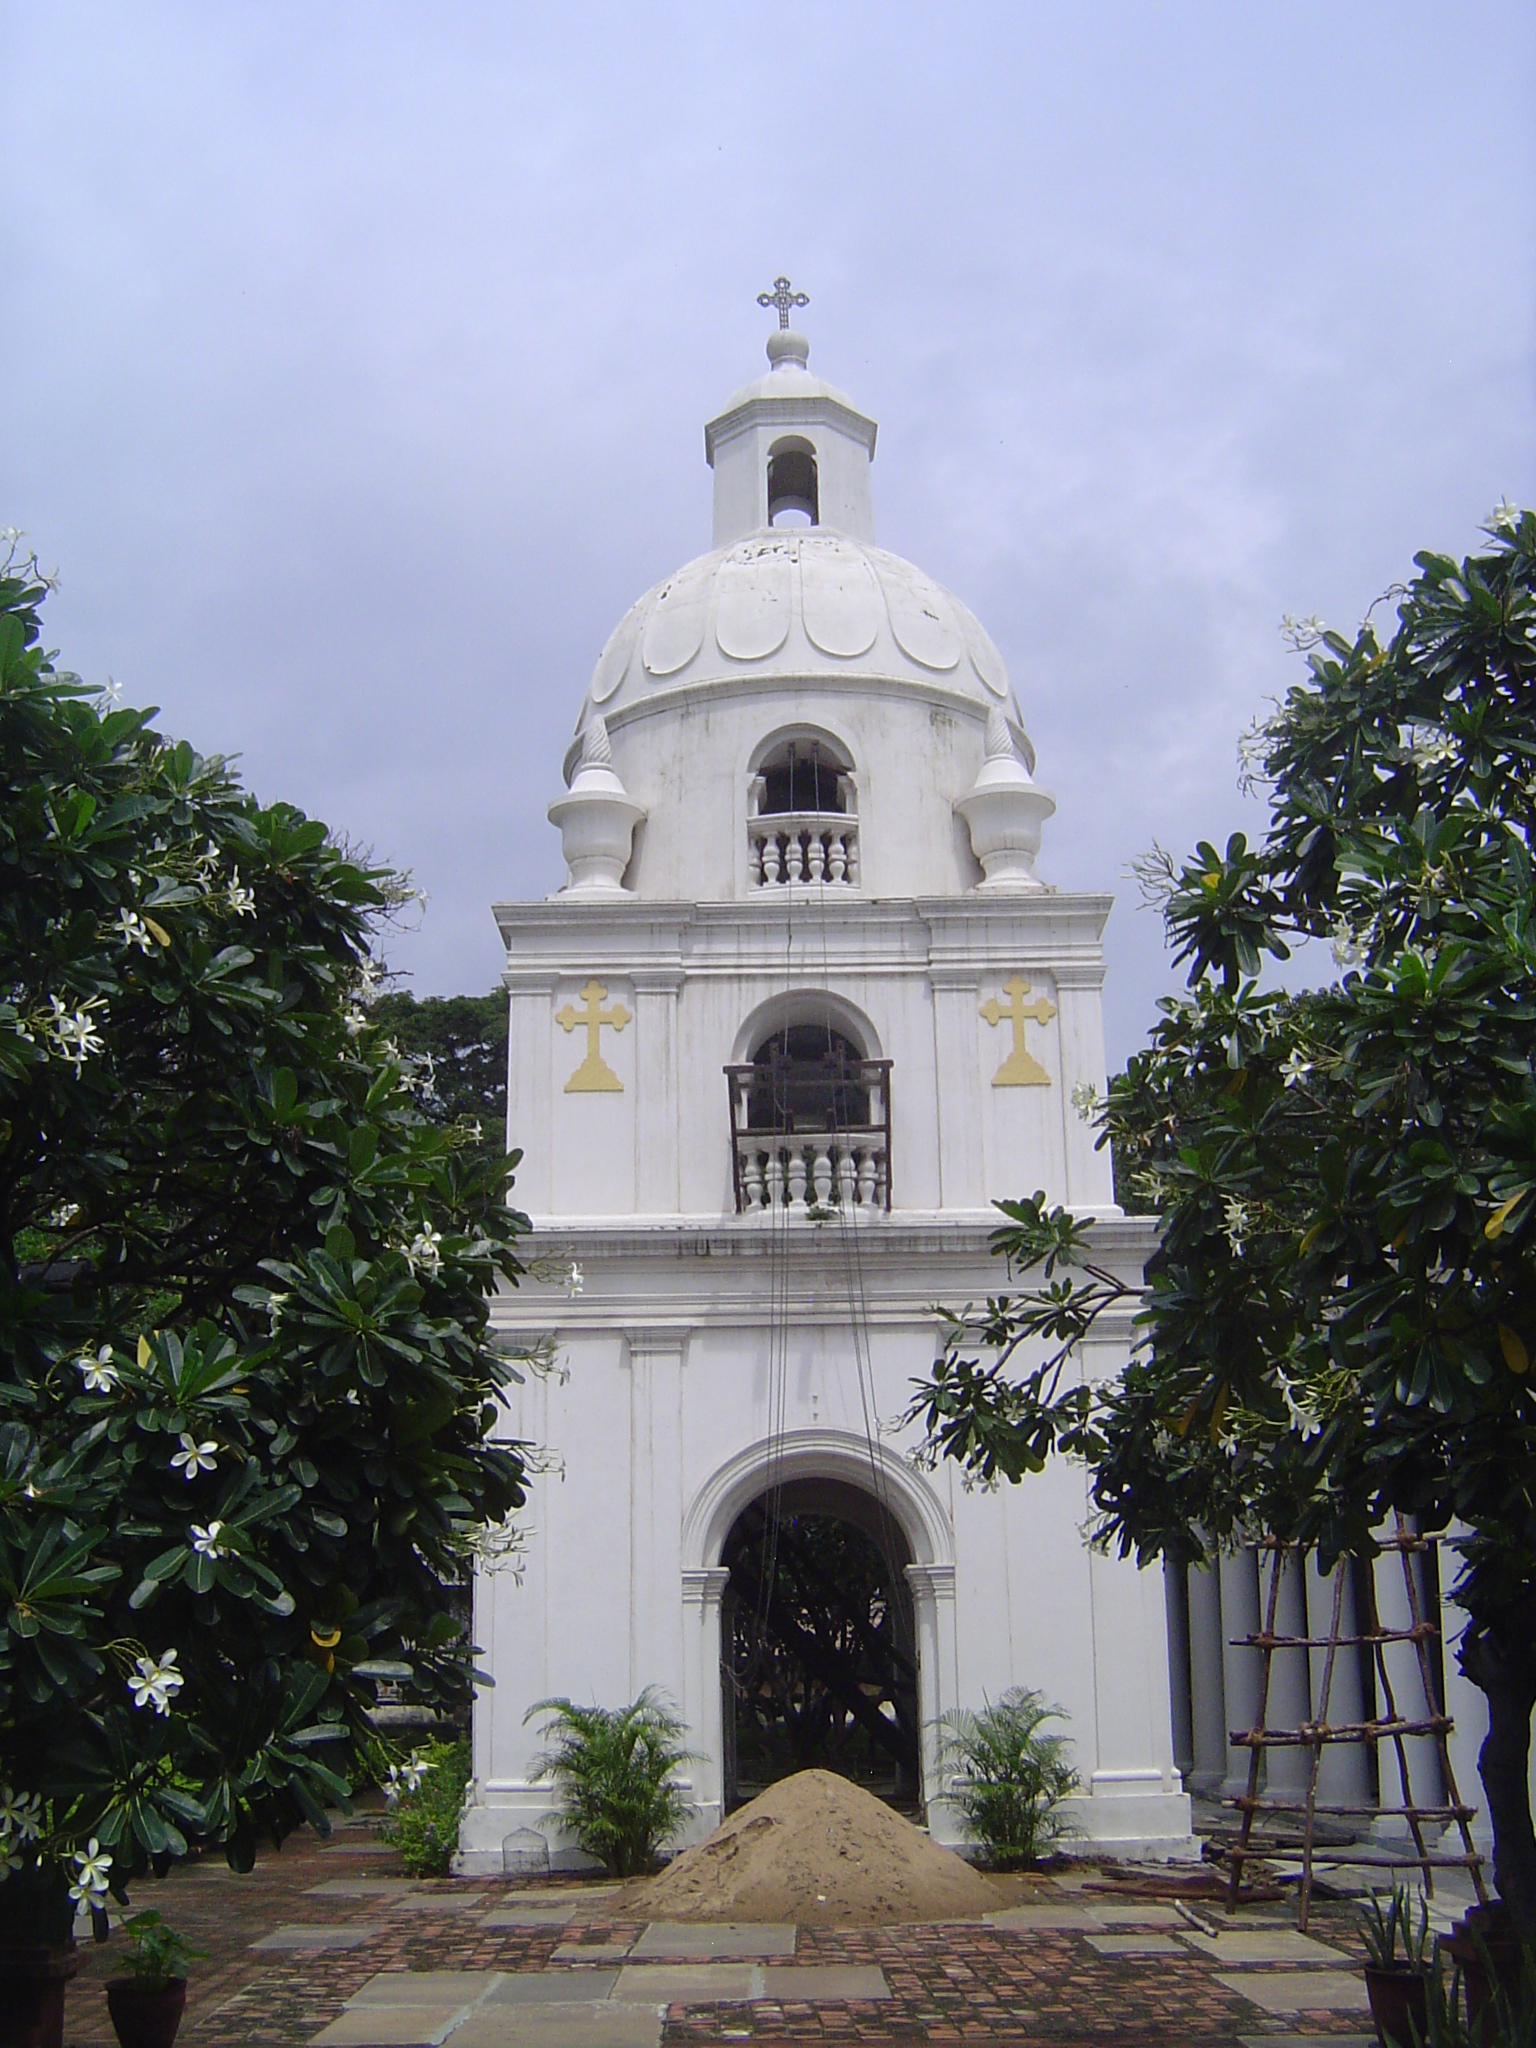 Peninsular India: Chennai / Madras 3: British Churches